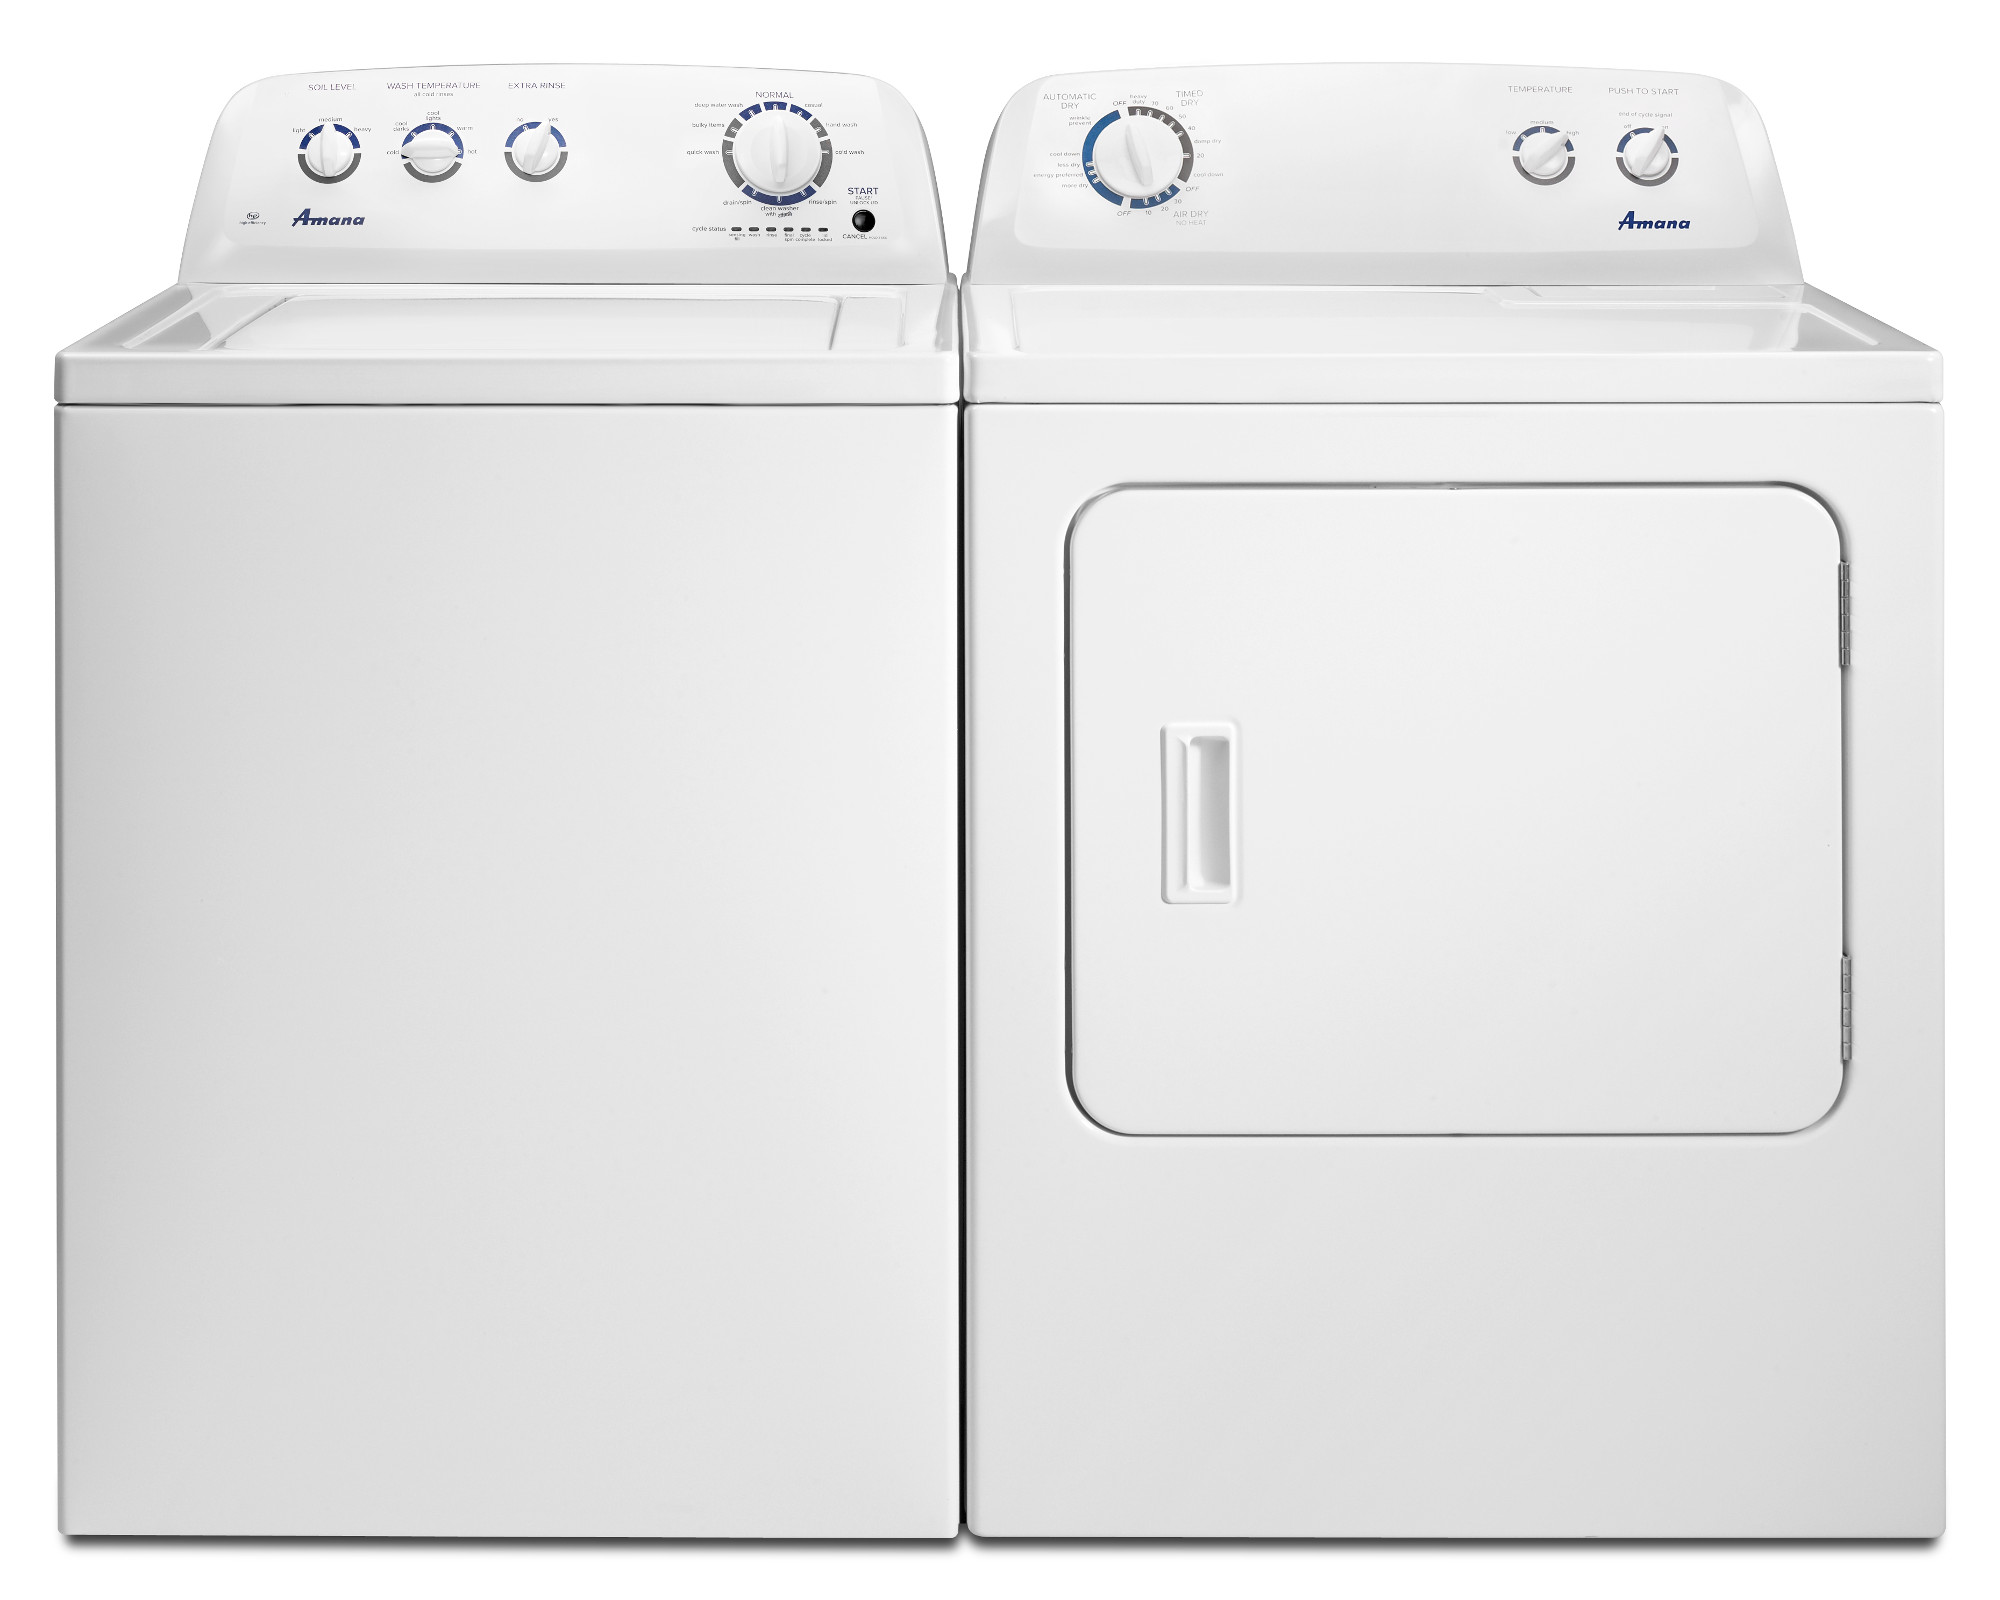 Amana 3.5 cu. ft. High-Efficiency Washer - White